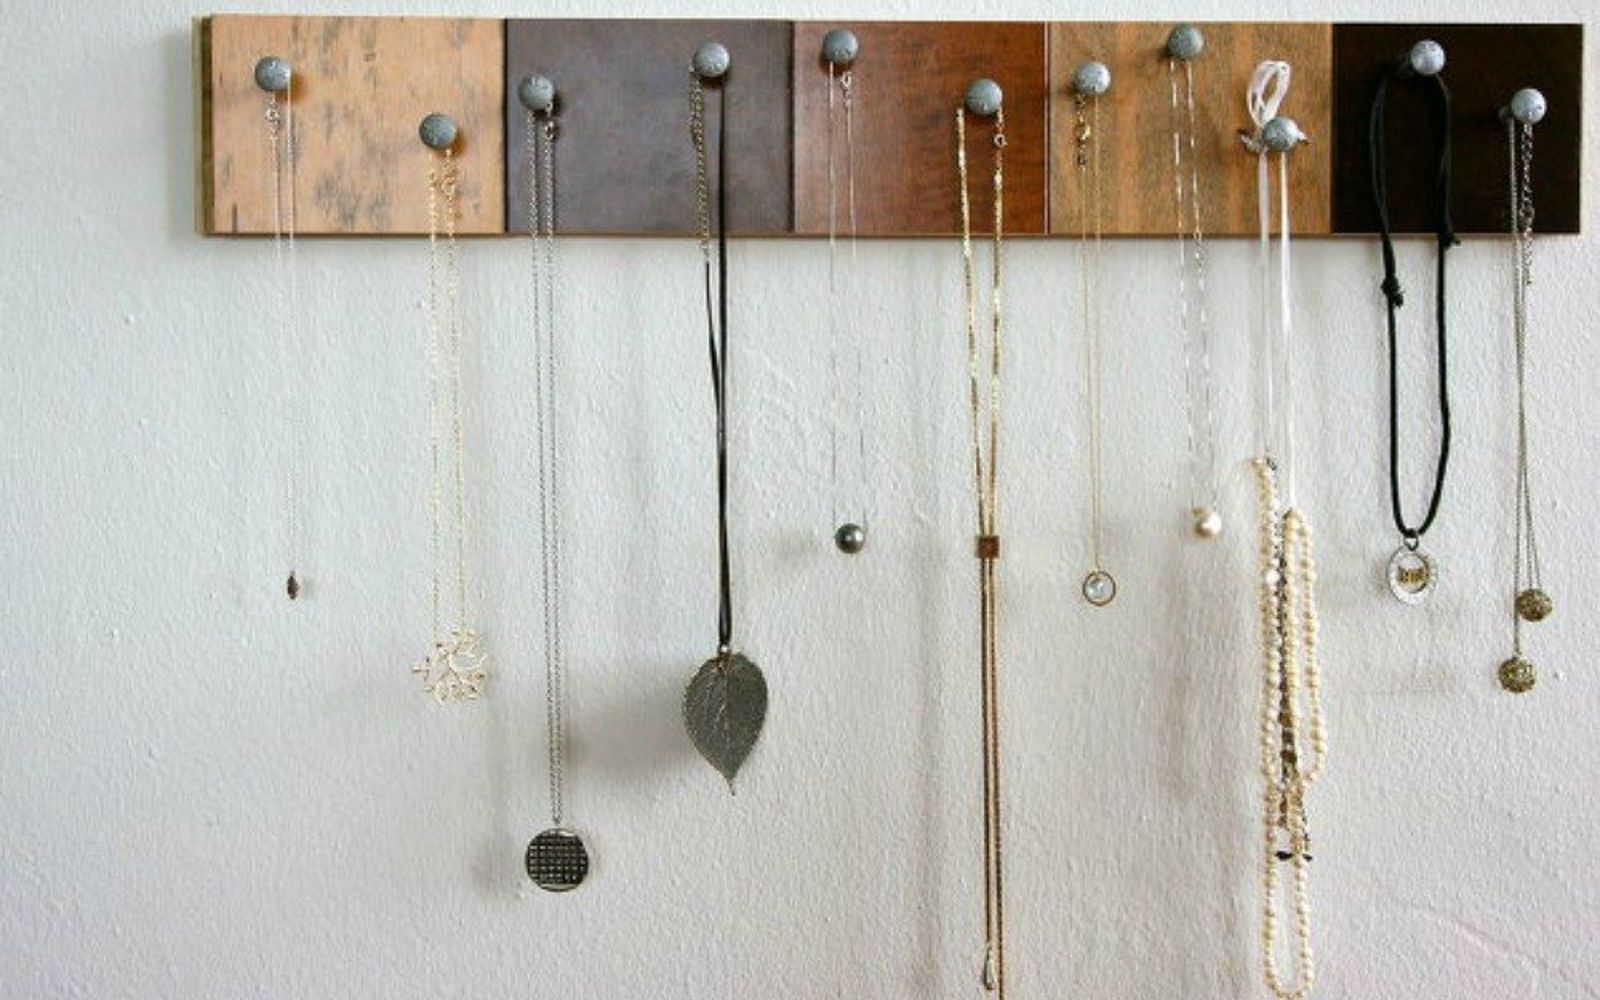 s 21 jewelry organizing ideas that are better than a jewelry box, organizing, This great decor piece with floor samples